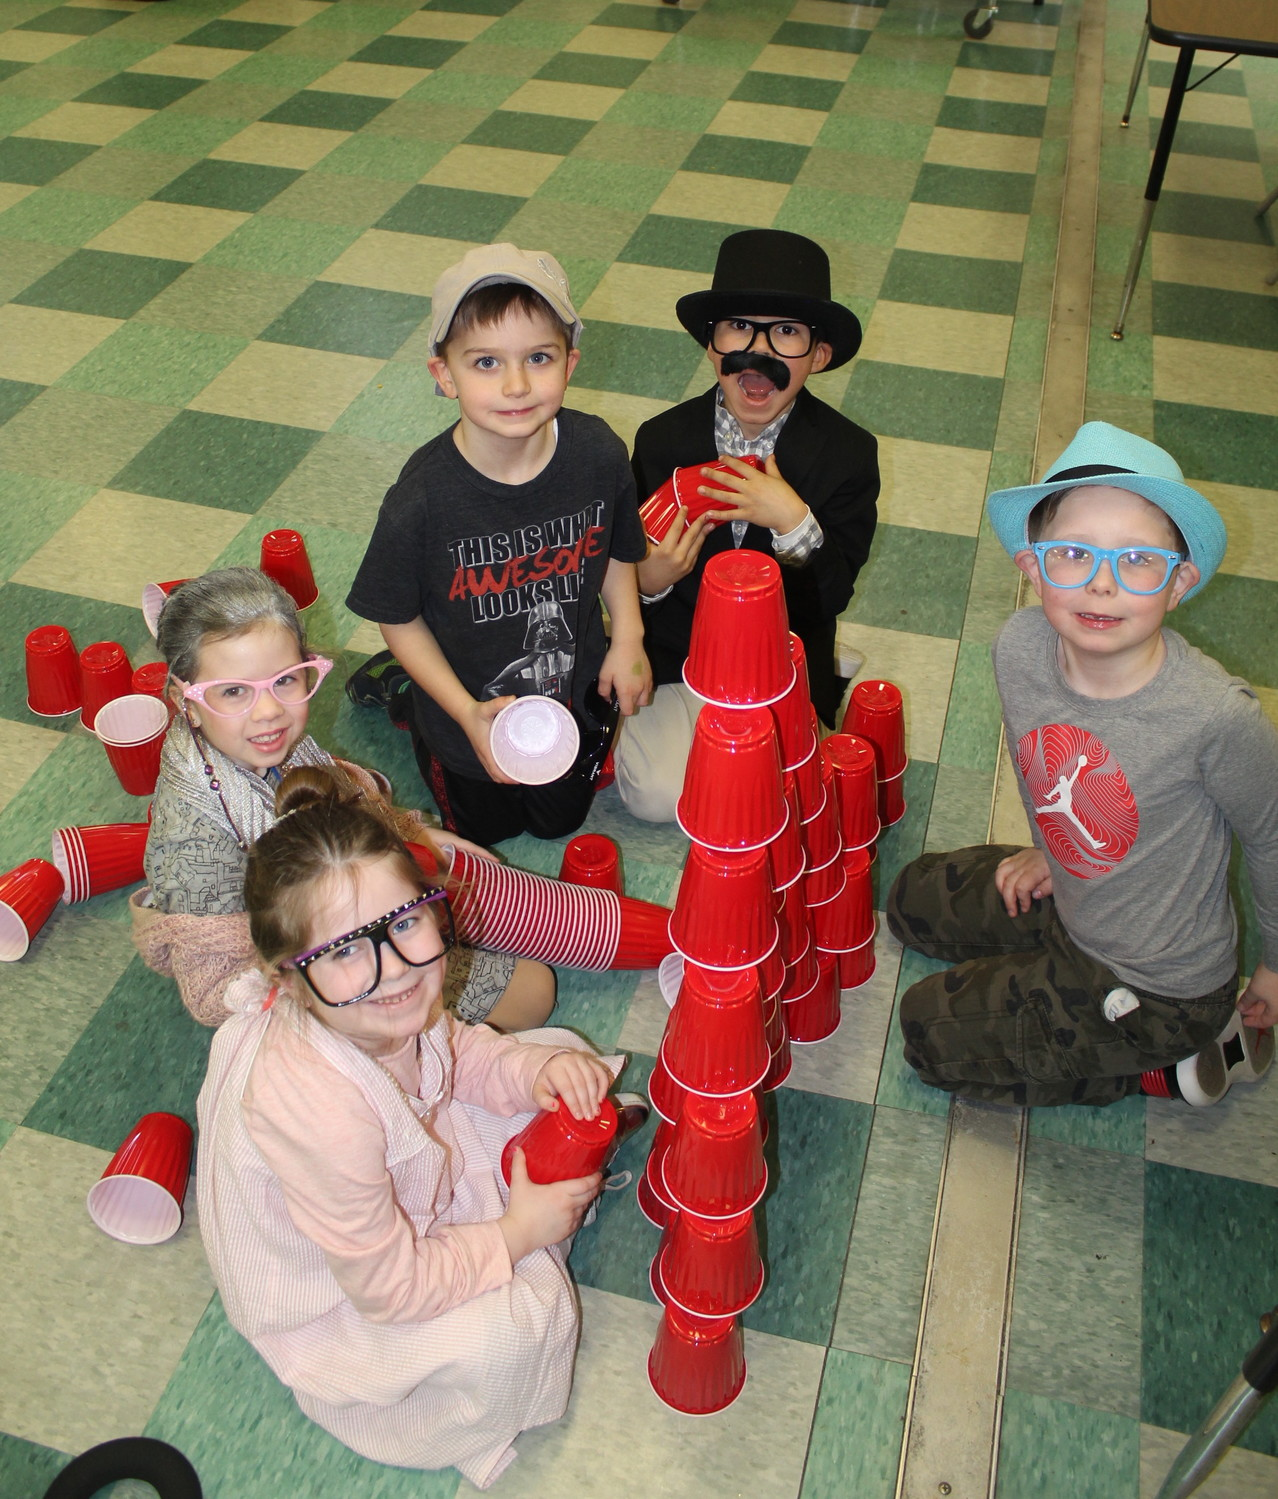 For one of Chatterton's 100th day stations, students were asked to count and construct a tower from 100 cups.